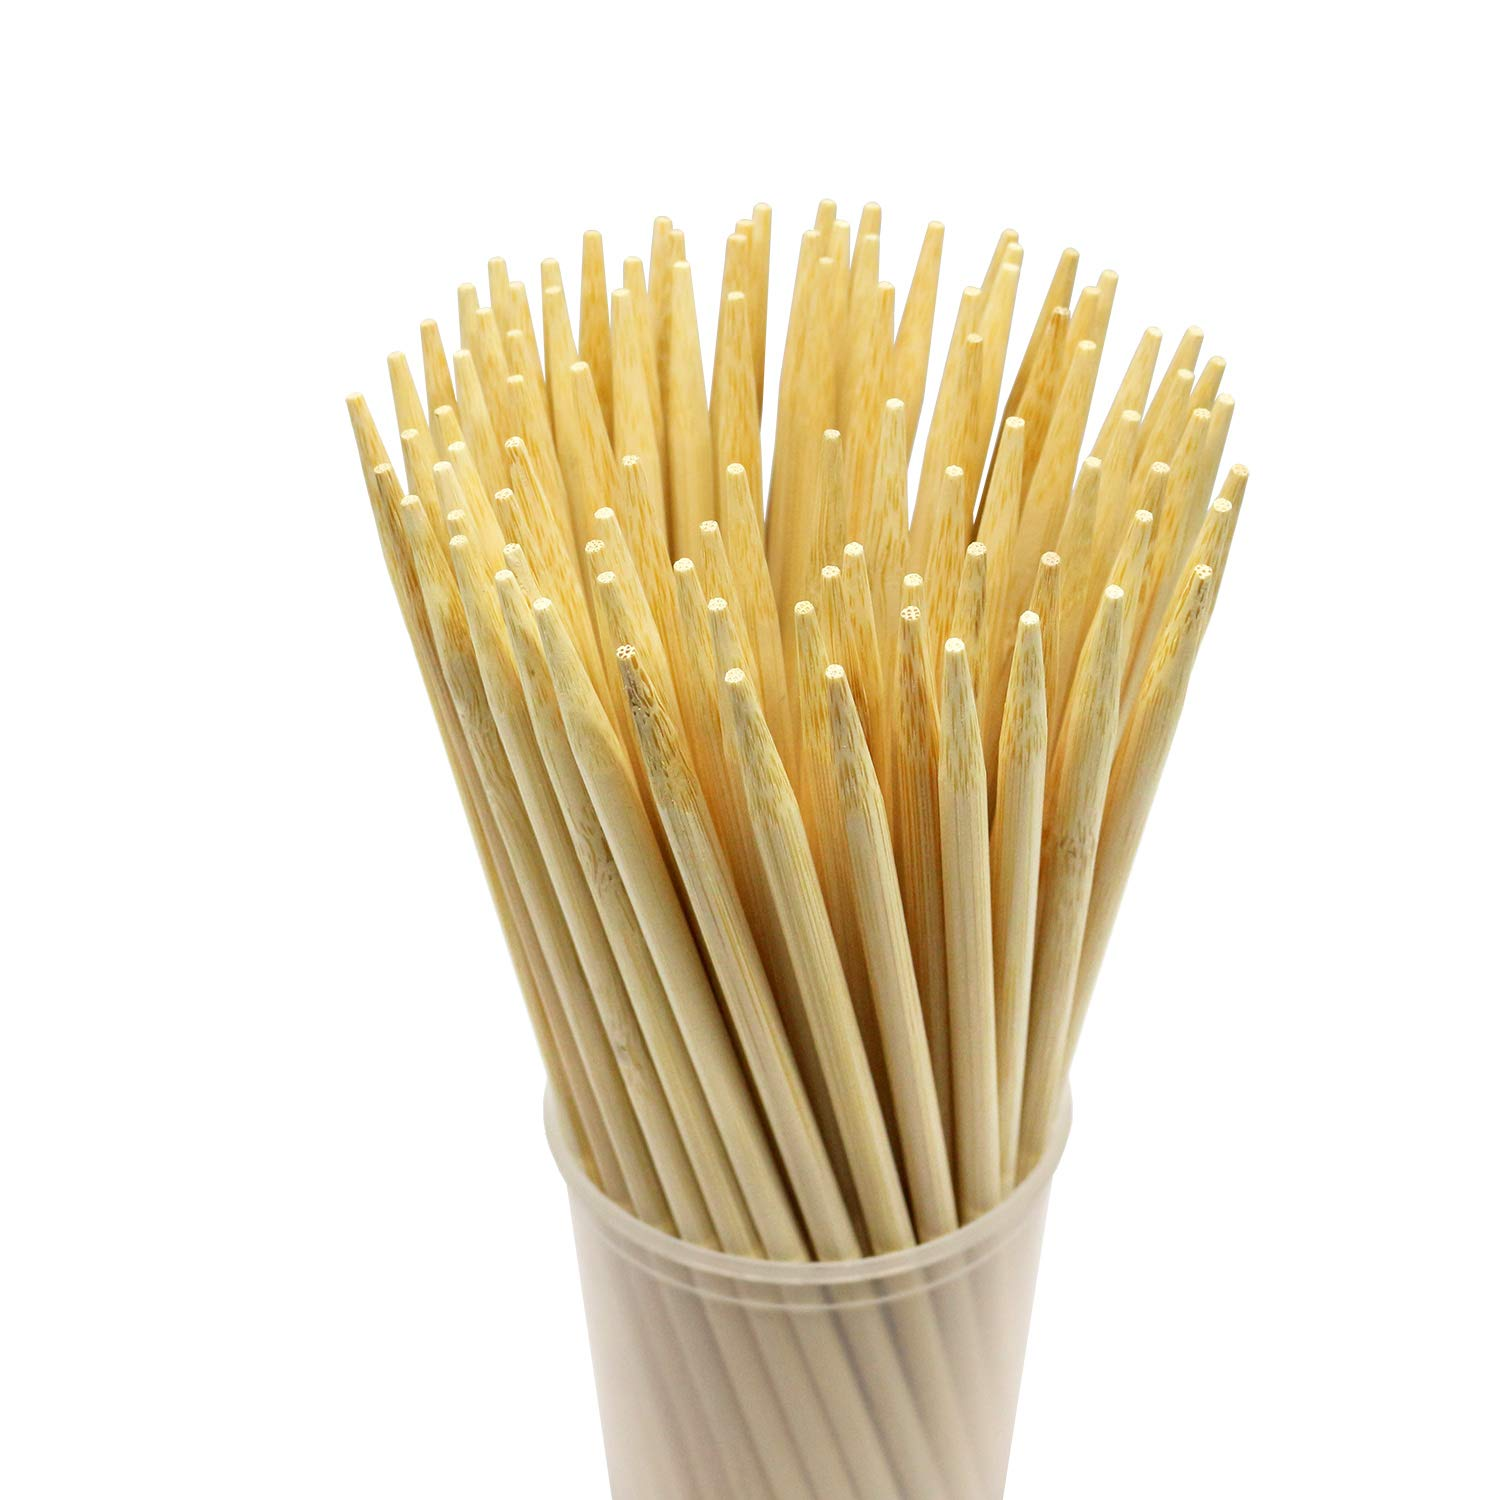 Prouten 7 inch Sturdy Bamboo Sticks for Caramel Candy Apple Sticks Corn Dog Hotdog Sausage skewers Candy Lollipops Corn Sticks semi-Pointed Tips Safe for Kids Pack of 100pcs